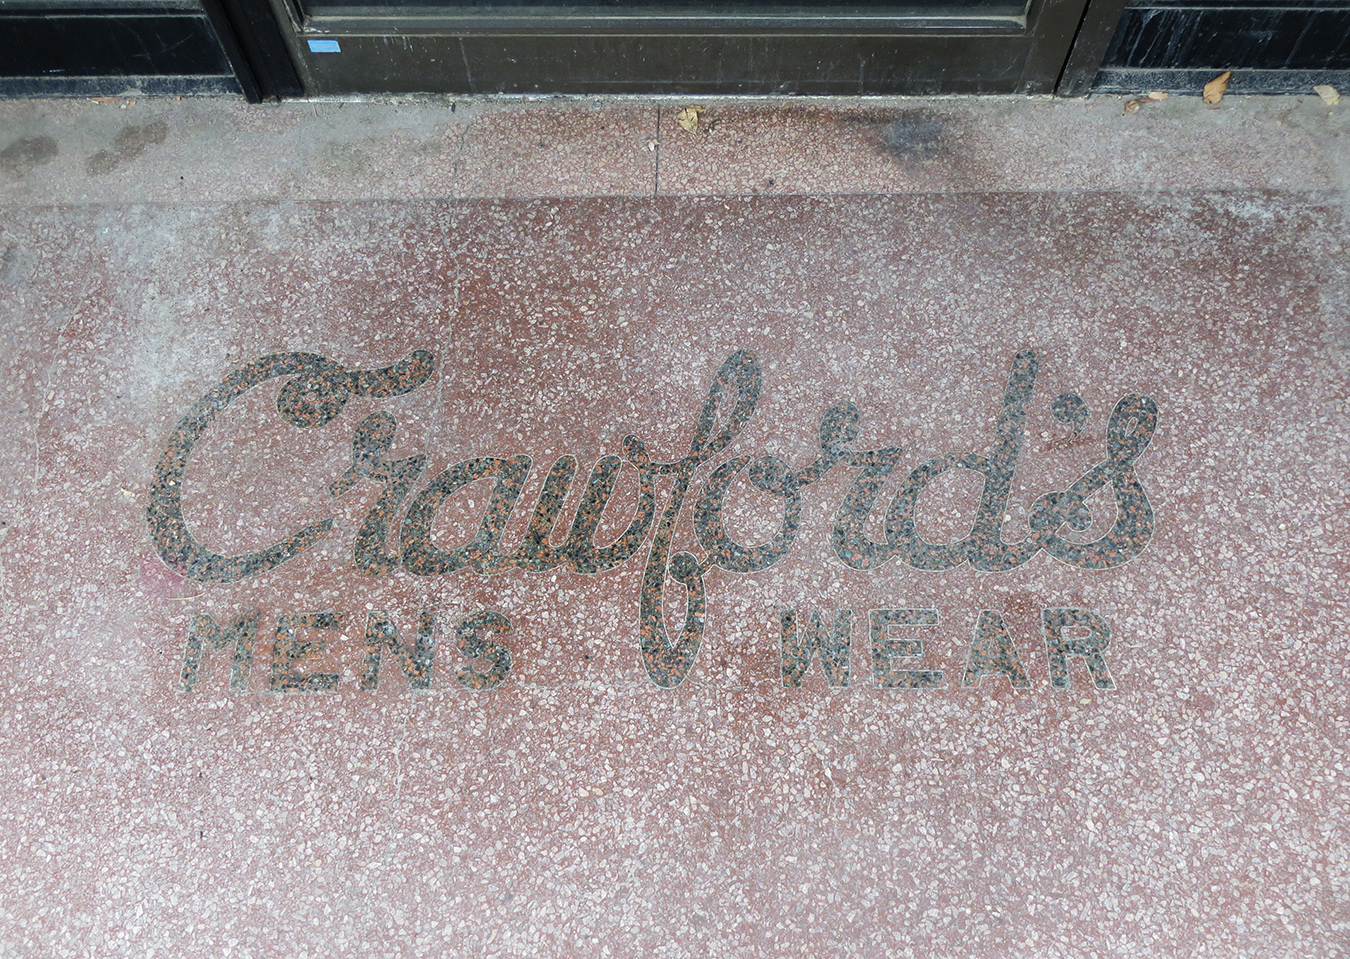 Pictured is the original Crawford's Menswear marble logo inlaid at the entrance of the building.